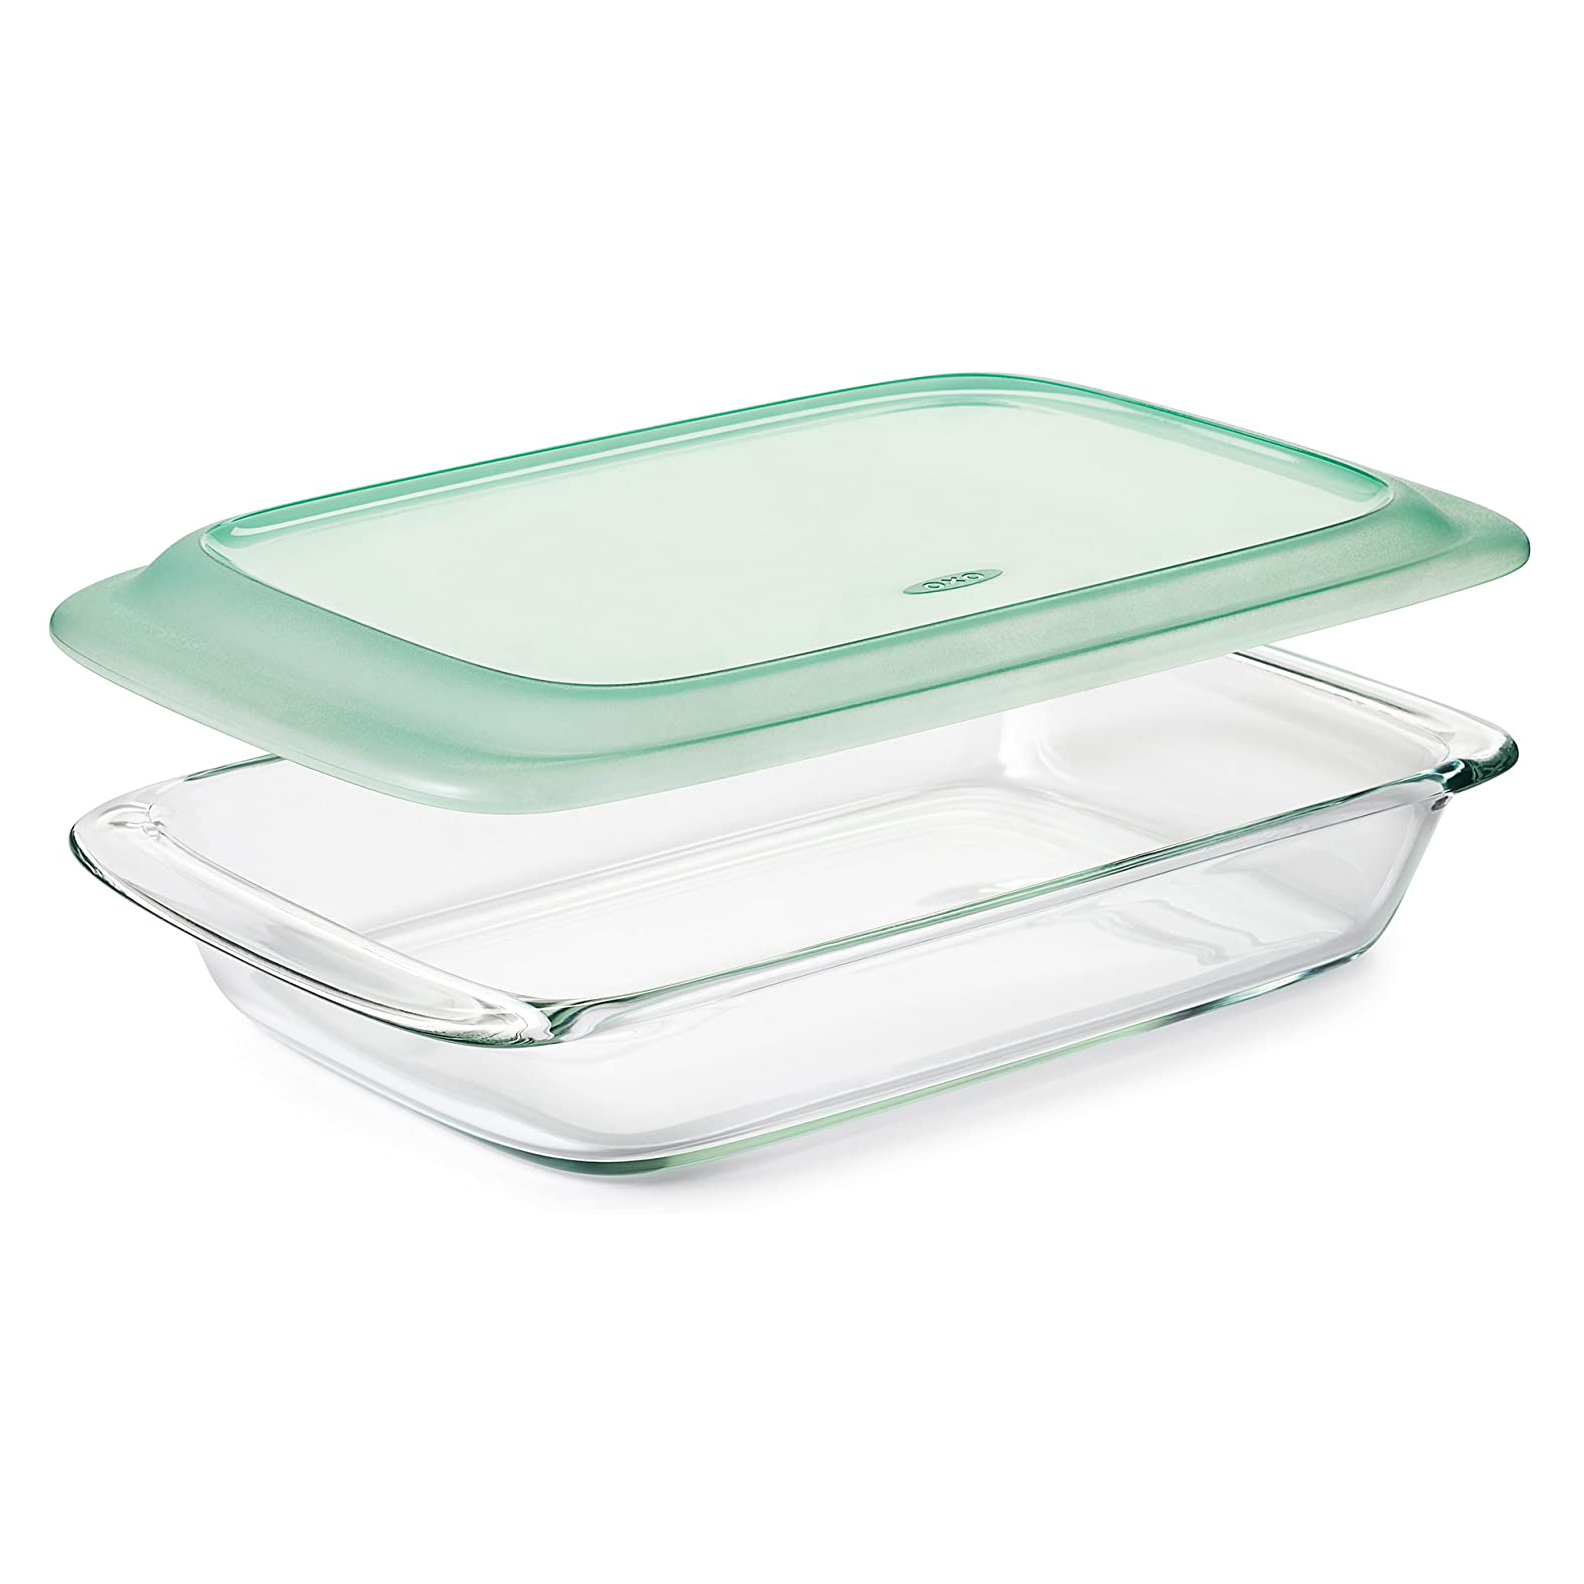 OXO Good Grips 3-Quart Glass Baking Dish with Lid